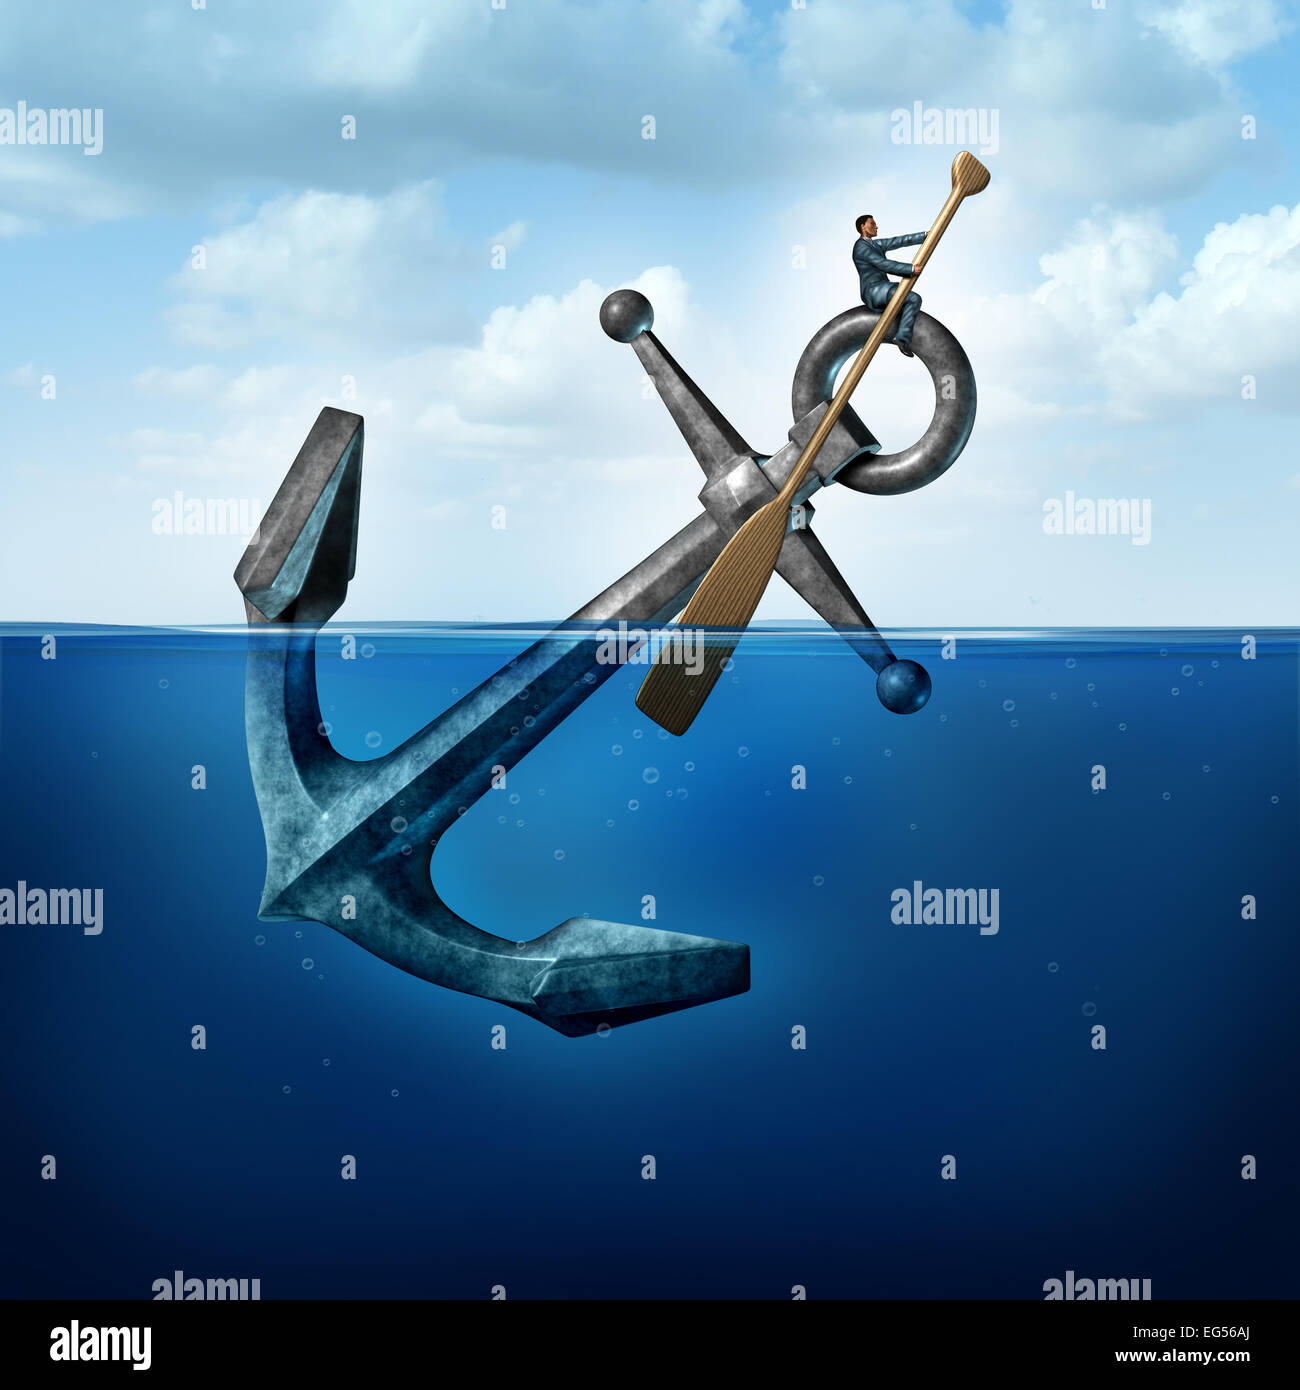 Positive thinking and resilience business concept with a person on a floating anchor rowing with a paddle as a symbol - Stock Image